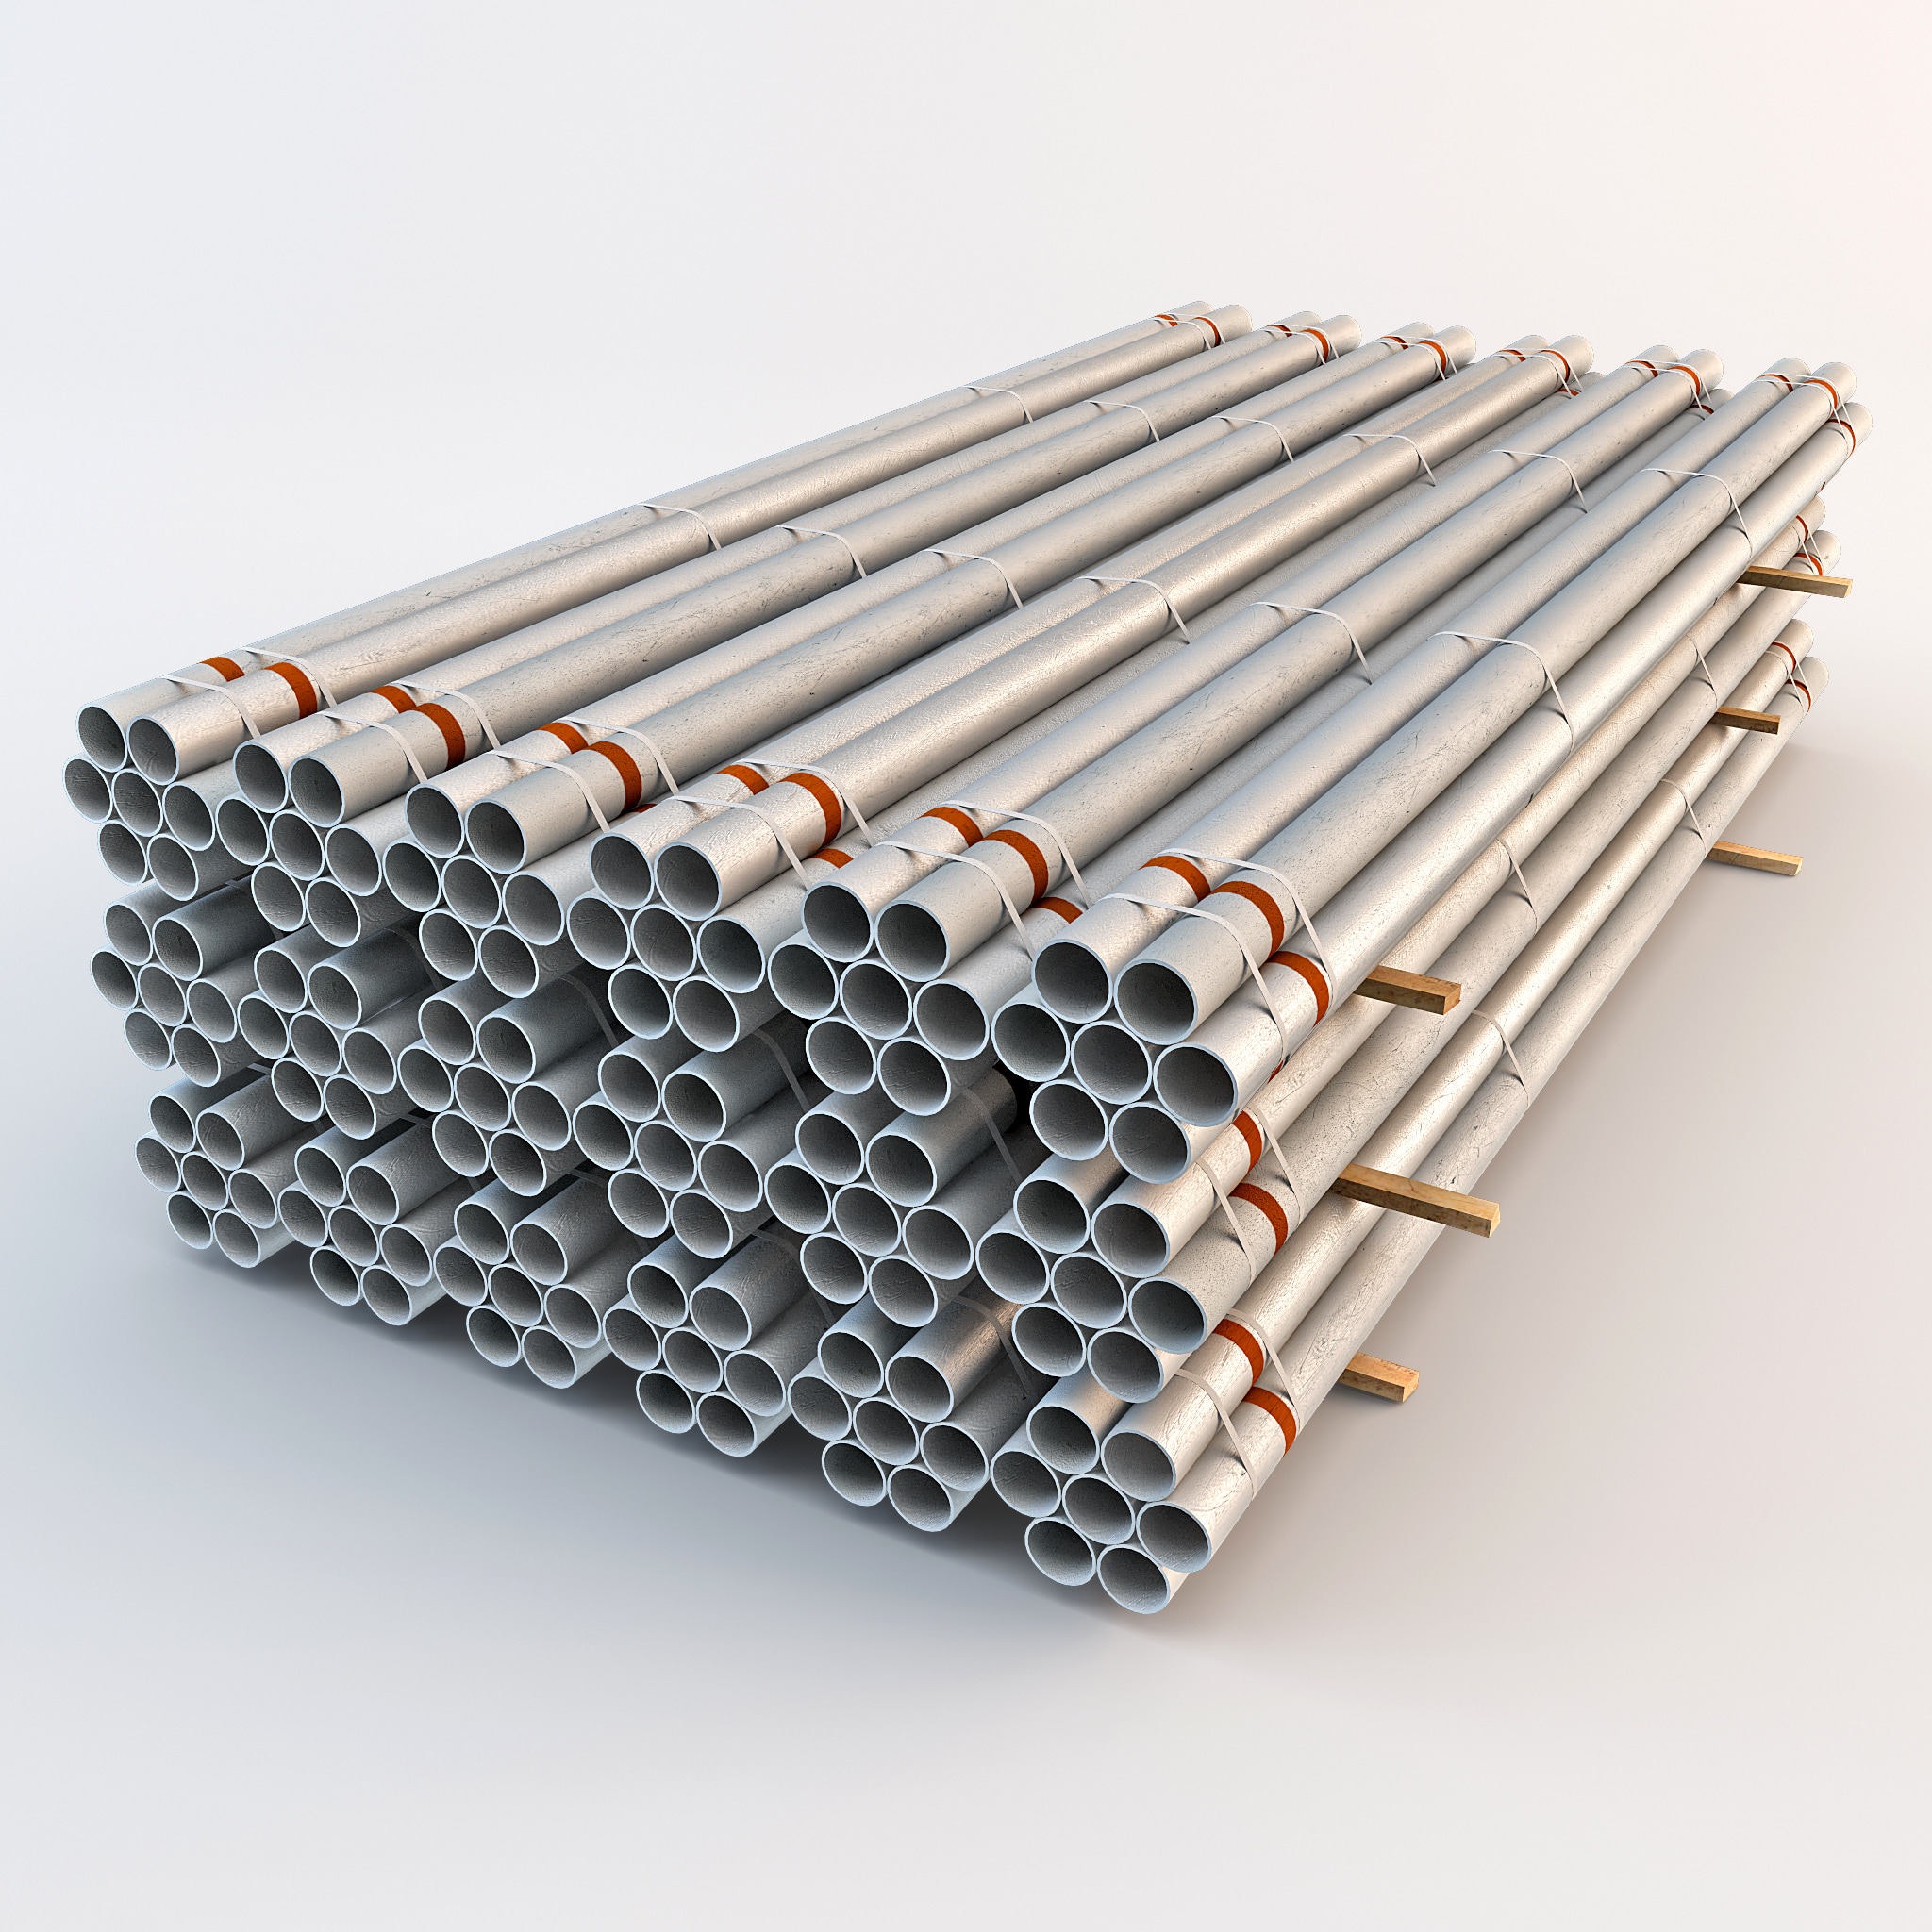 273144_Seamless_Steel_Pipe_0001.jpg